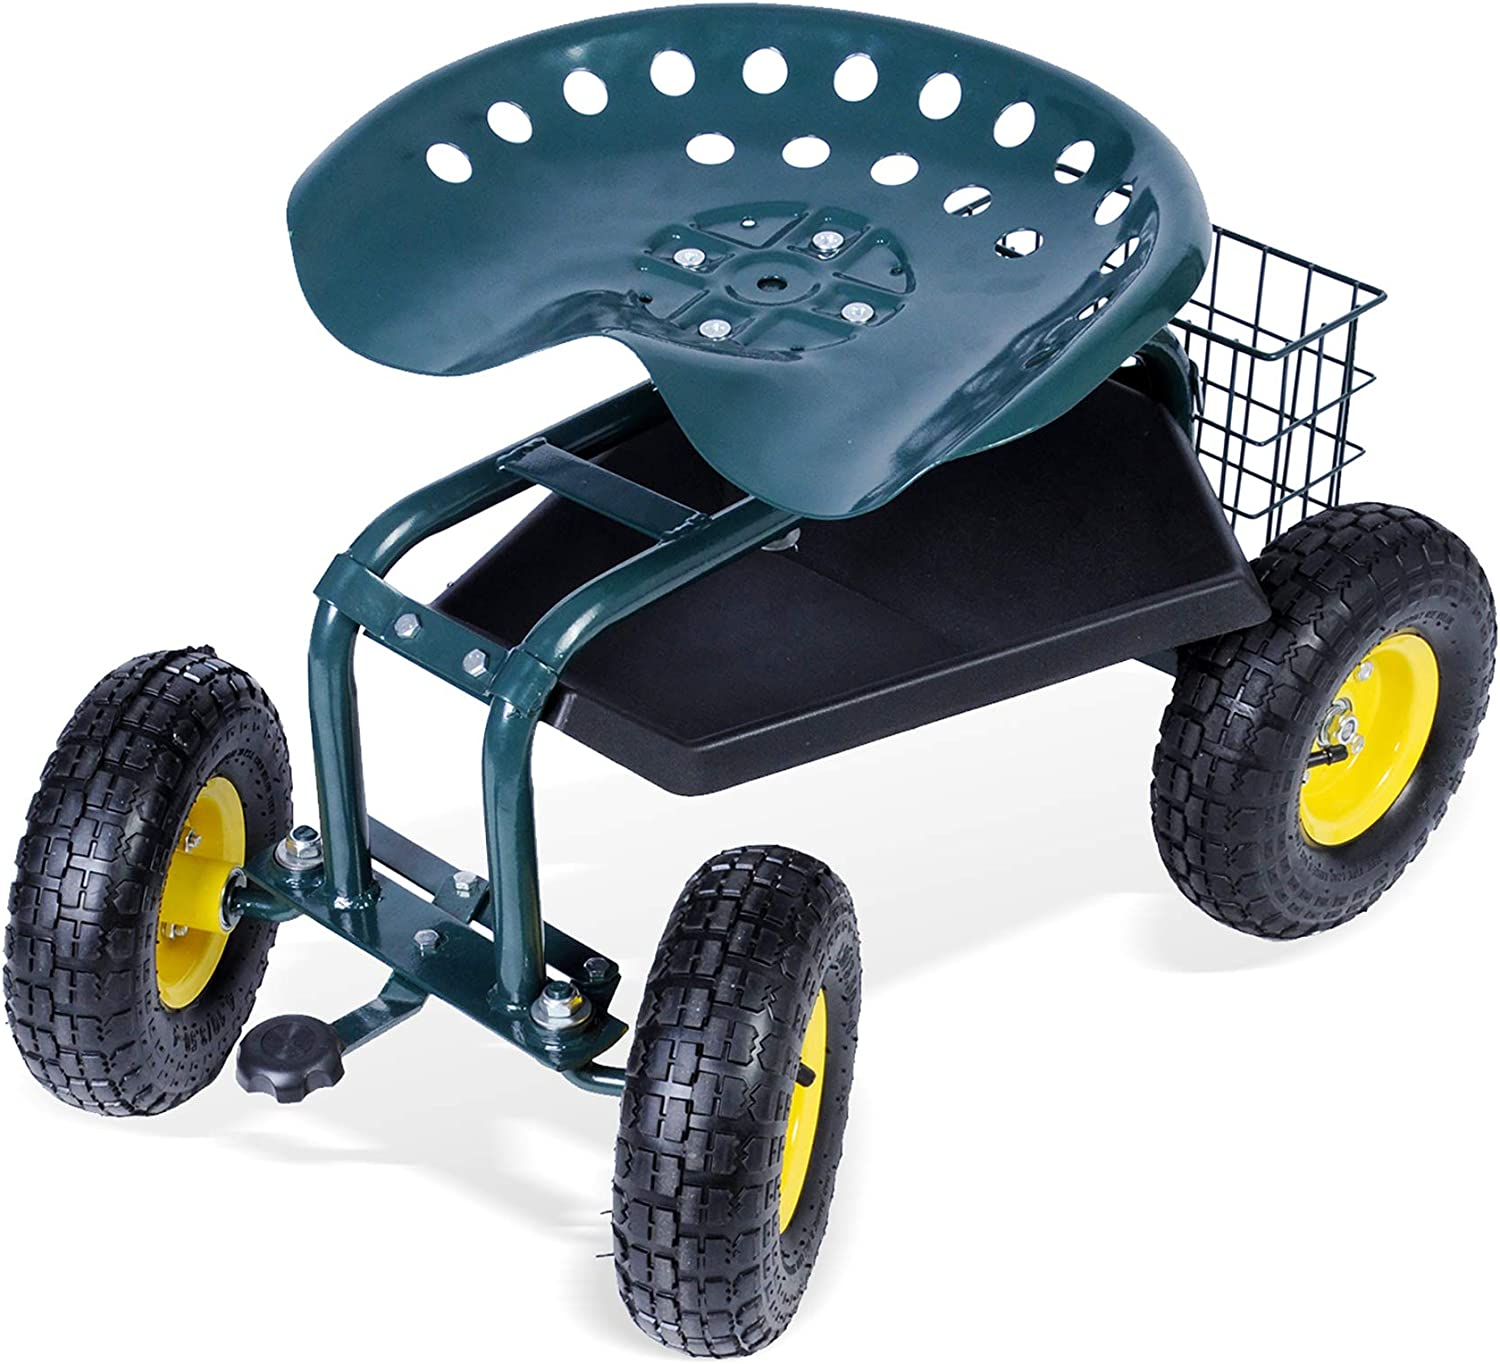 CARSTY Garden Cart with Seat and Wheels and Storage - Heavy Duty Rolling Steerable Scooter Work Seat Utility Tool Cart - Weight Capacity 330lbs